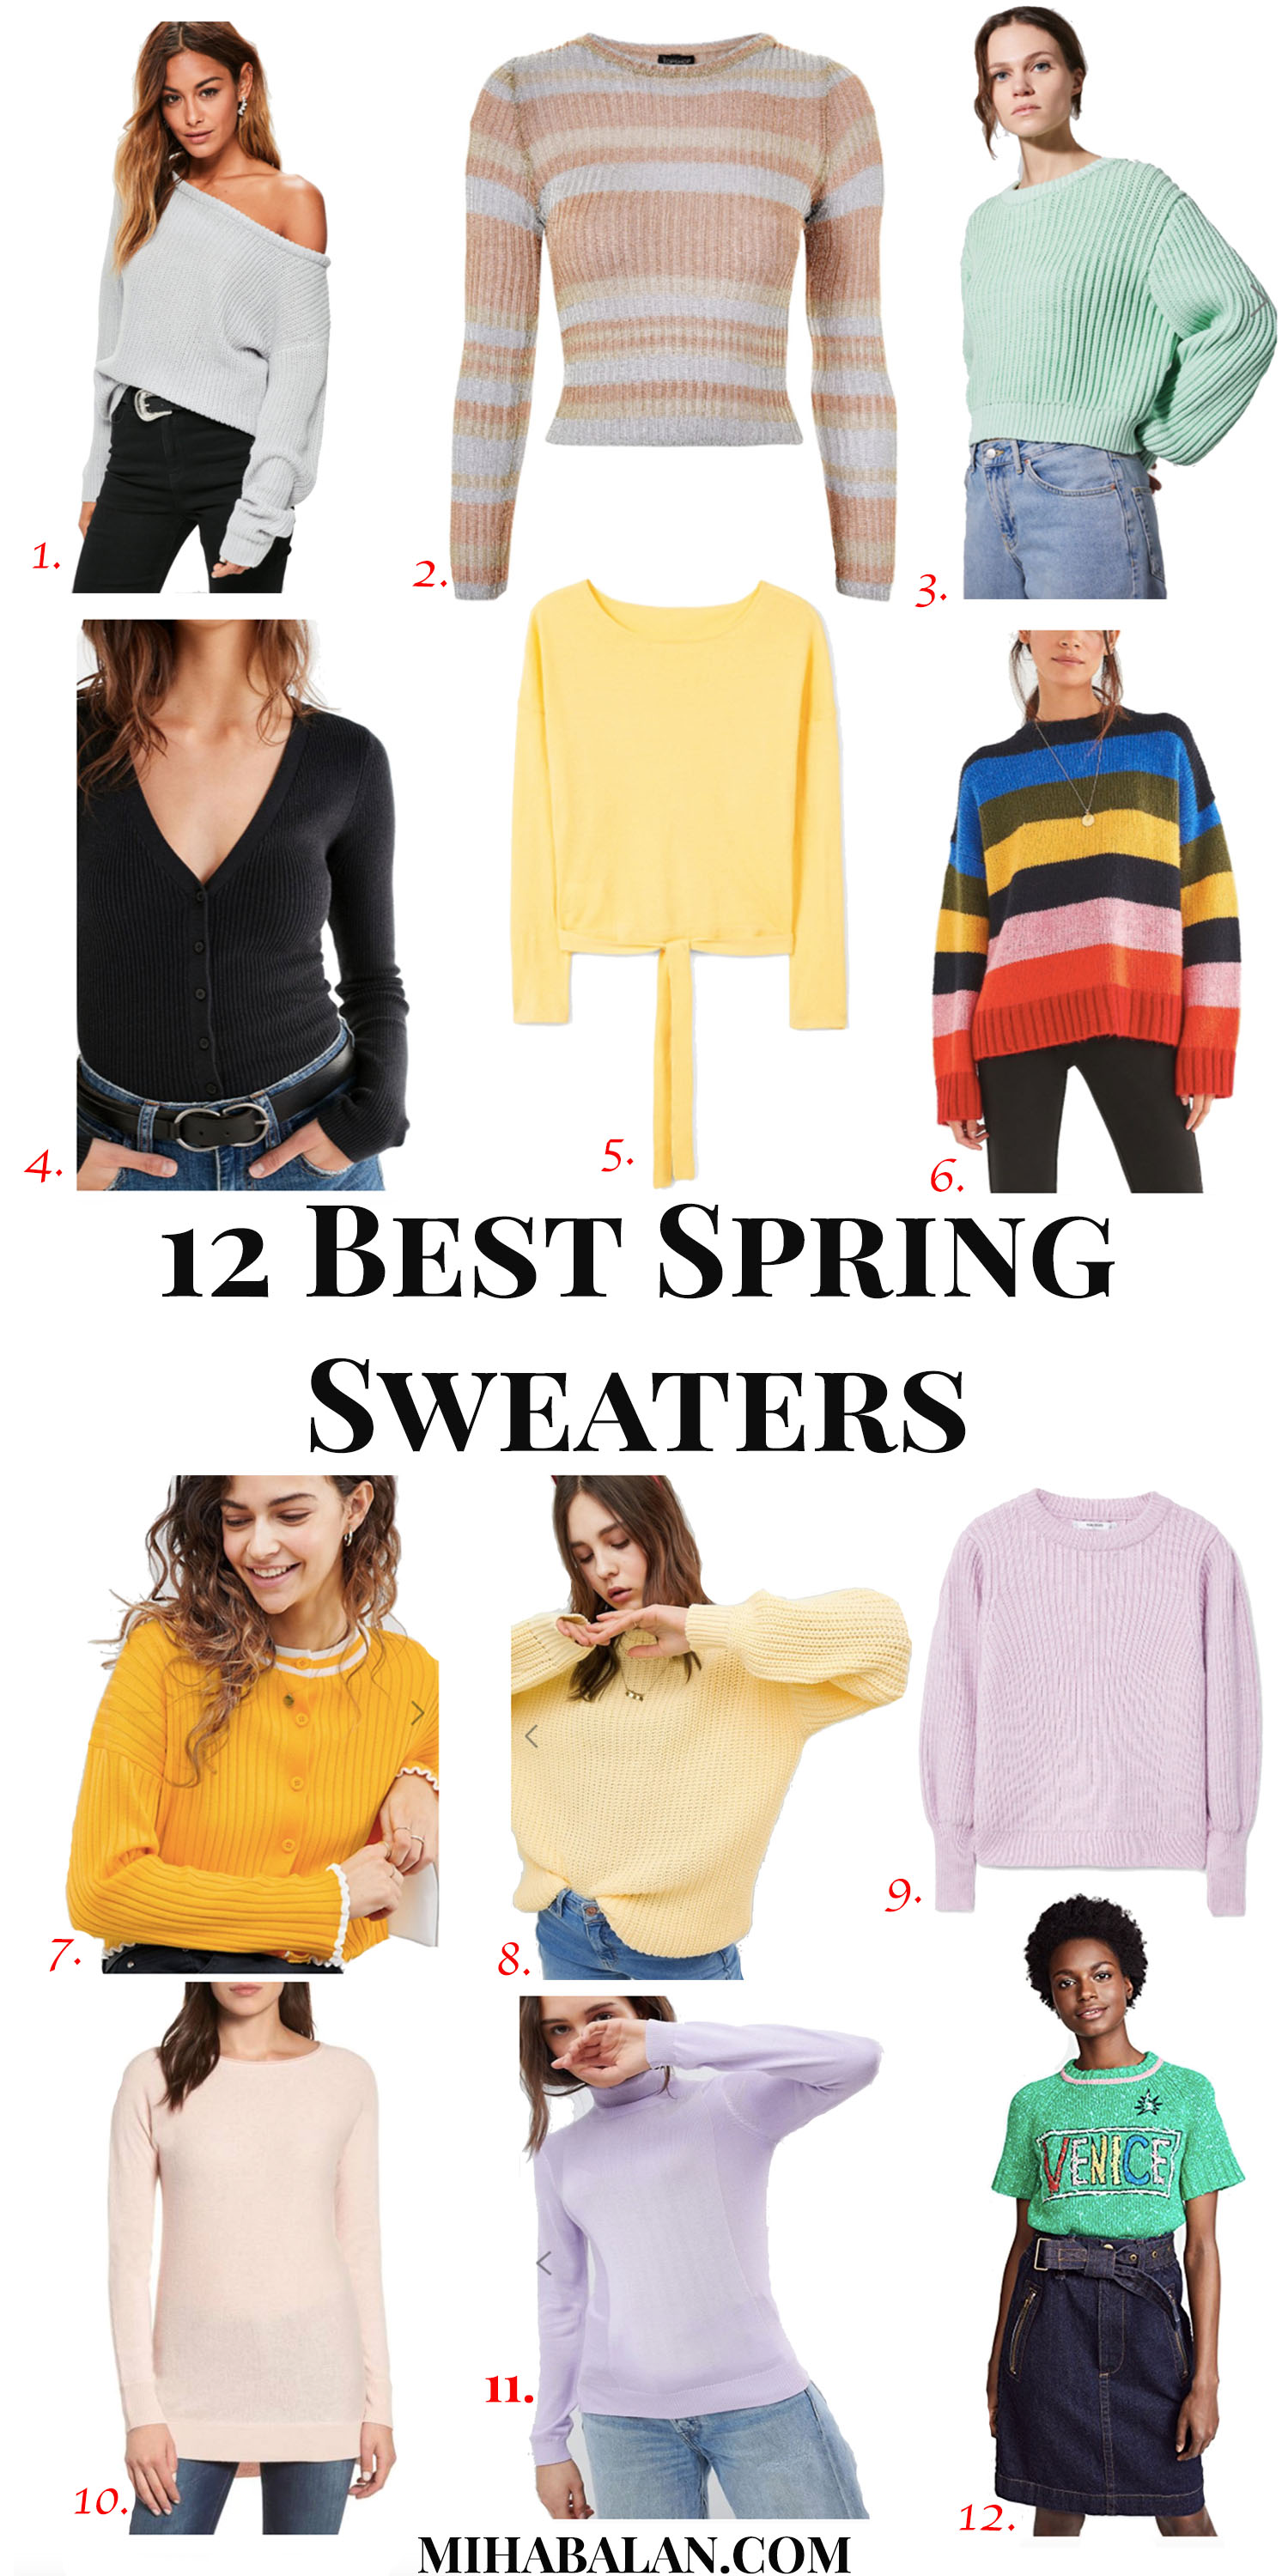 12 best spring sweaters